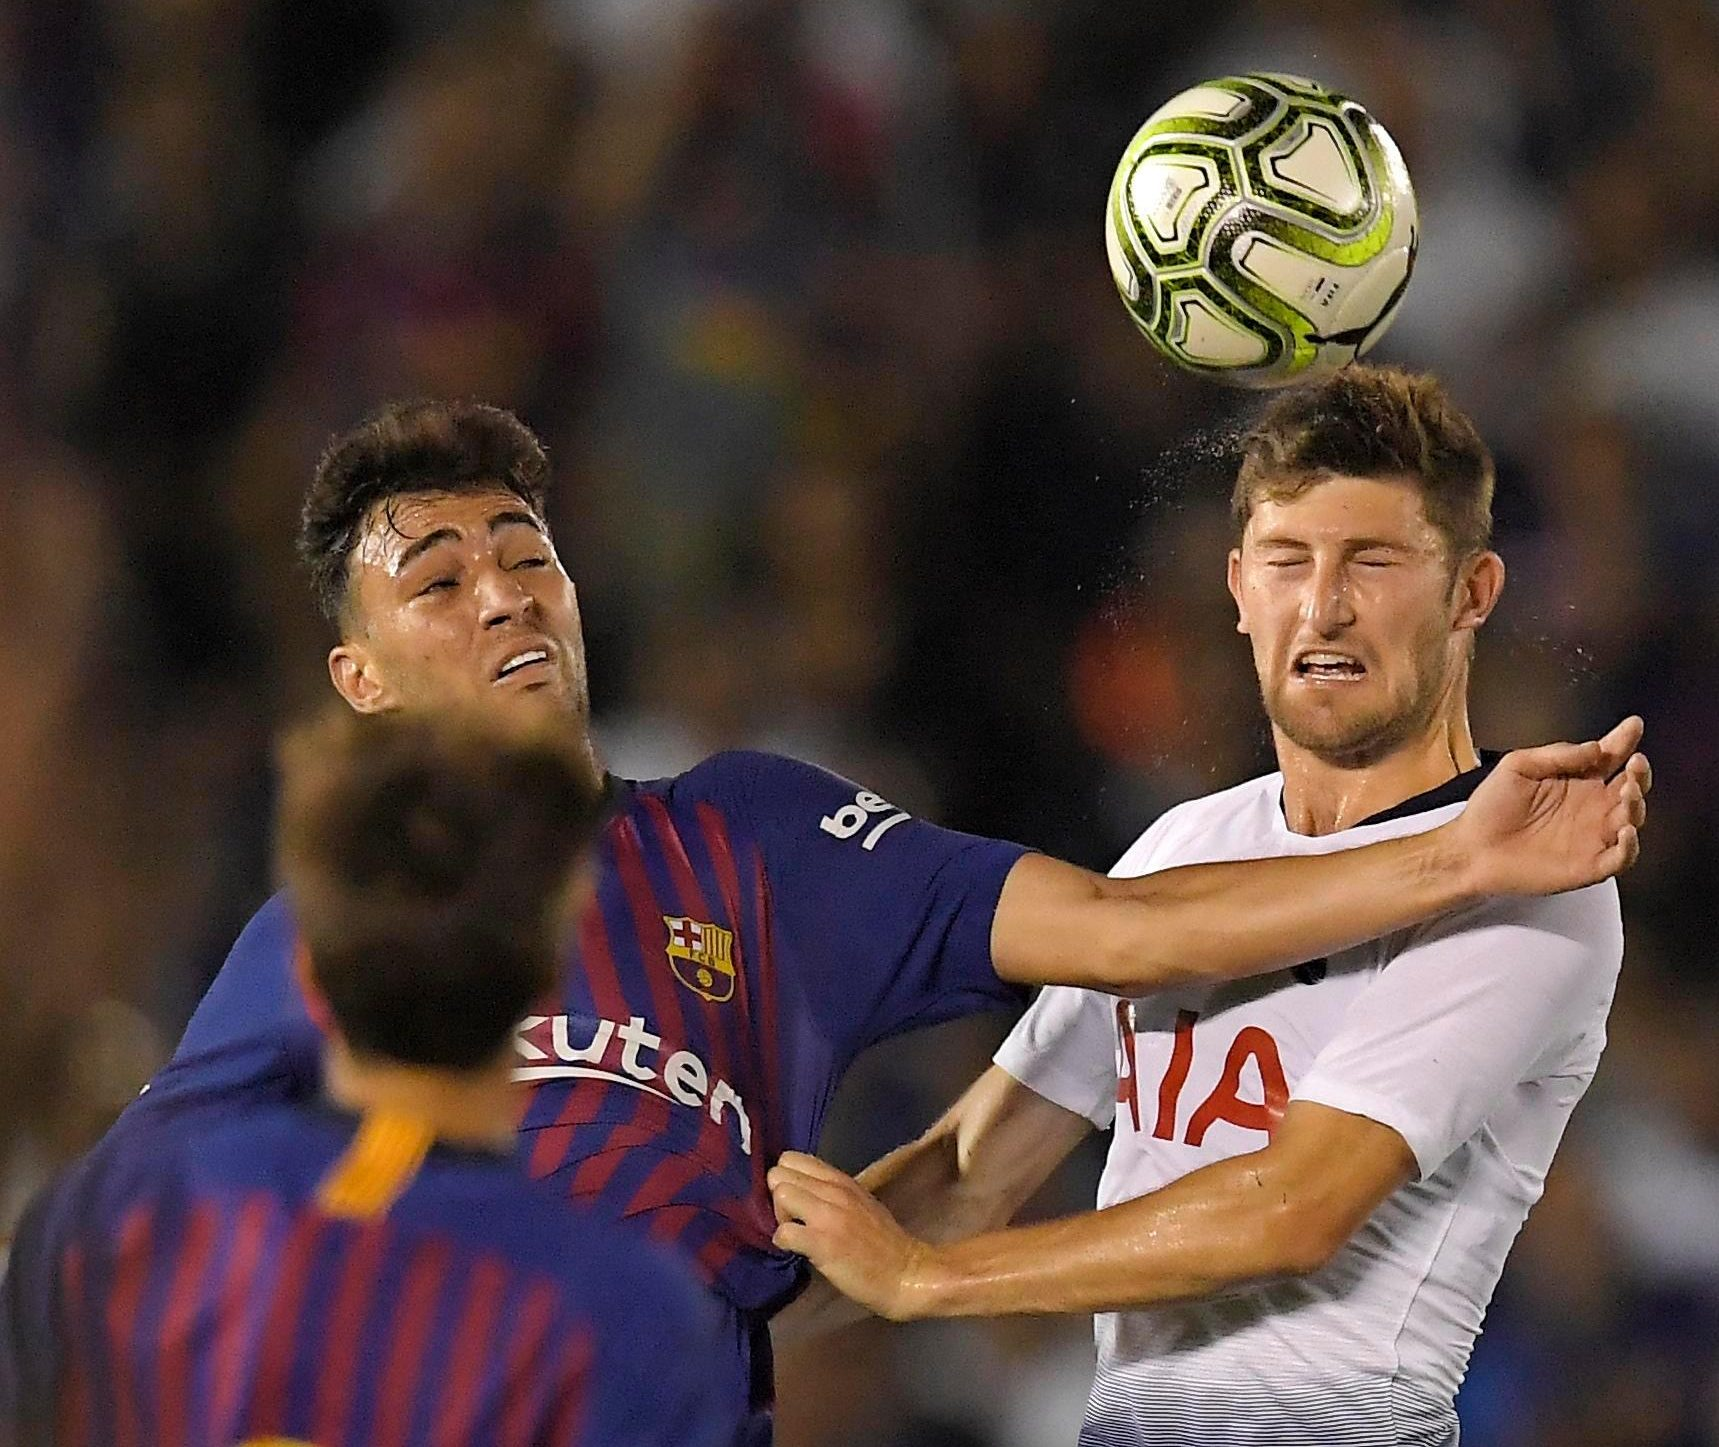 Wales left-back Ben Davies insists Tottenham players are unfazed by the lack of summer signings, despite major rivals splashing out